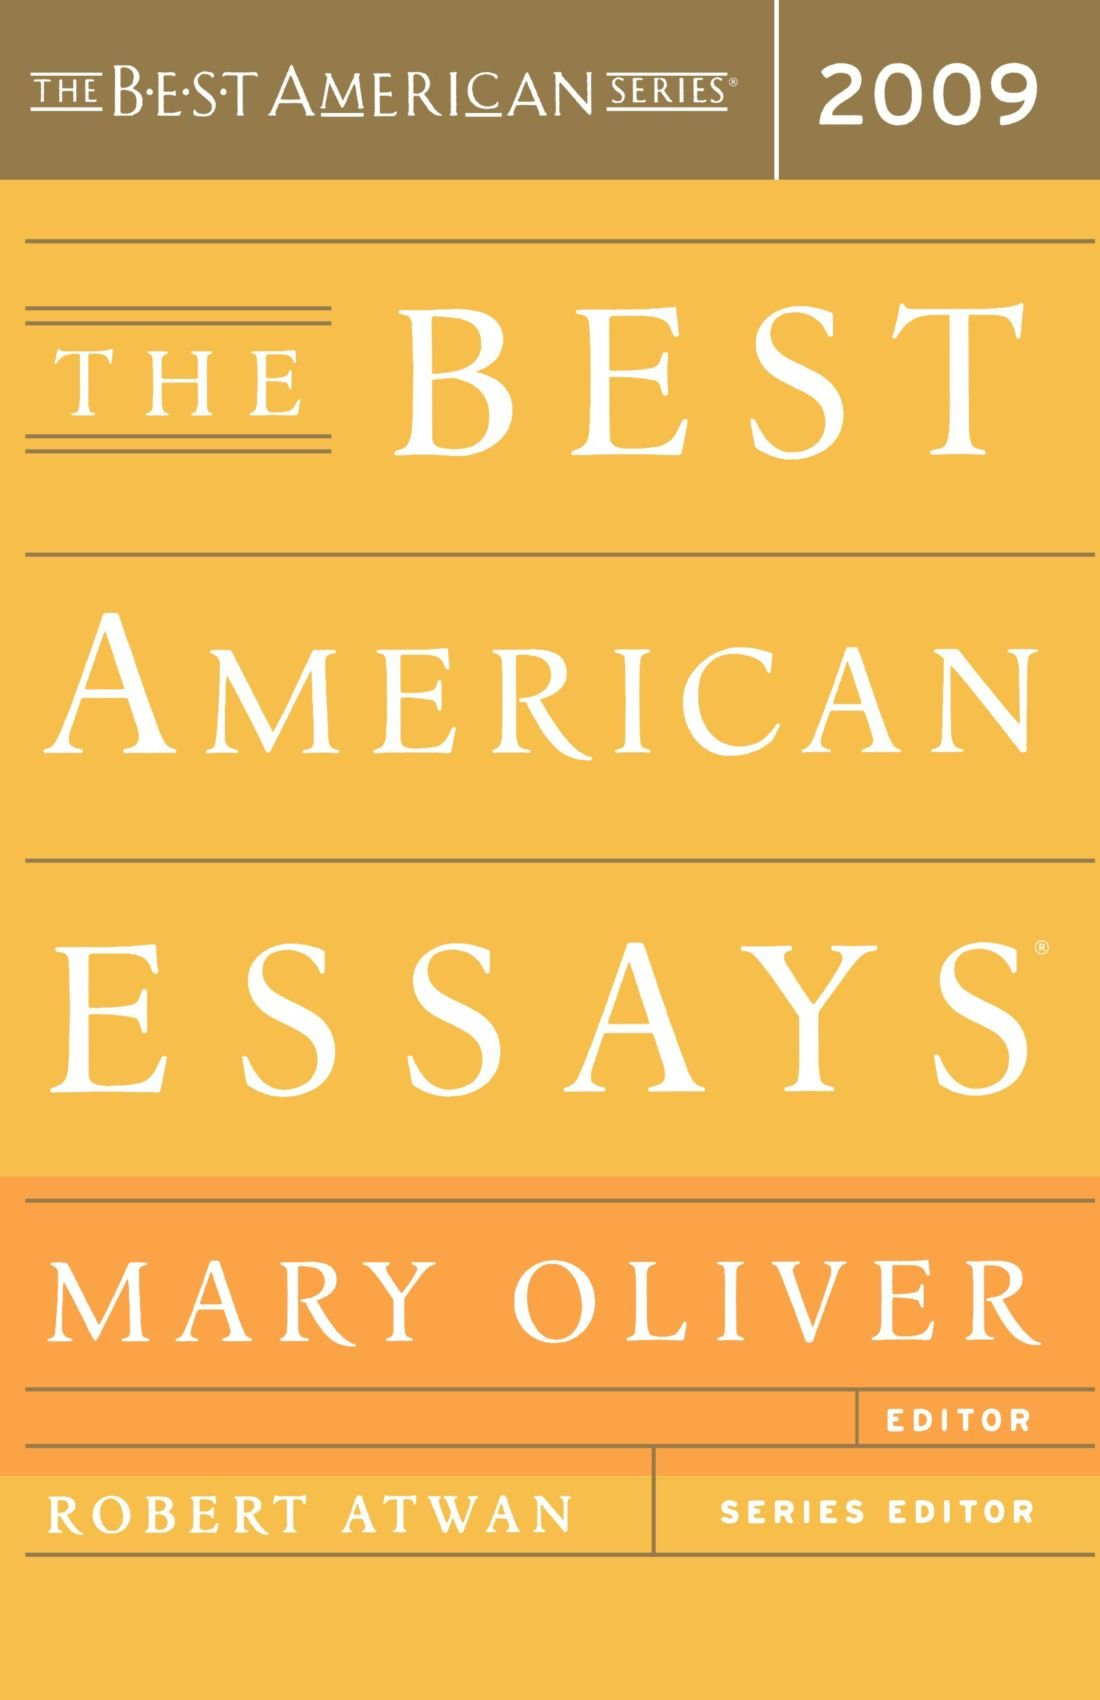 008 617qb5slhfl Essay Example The Best American Wonderful Essays 2018 List Pdf Download 2017 Free Full